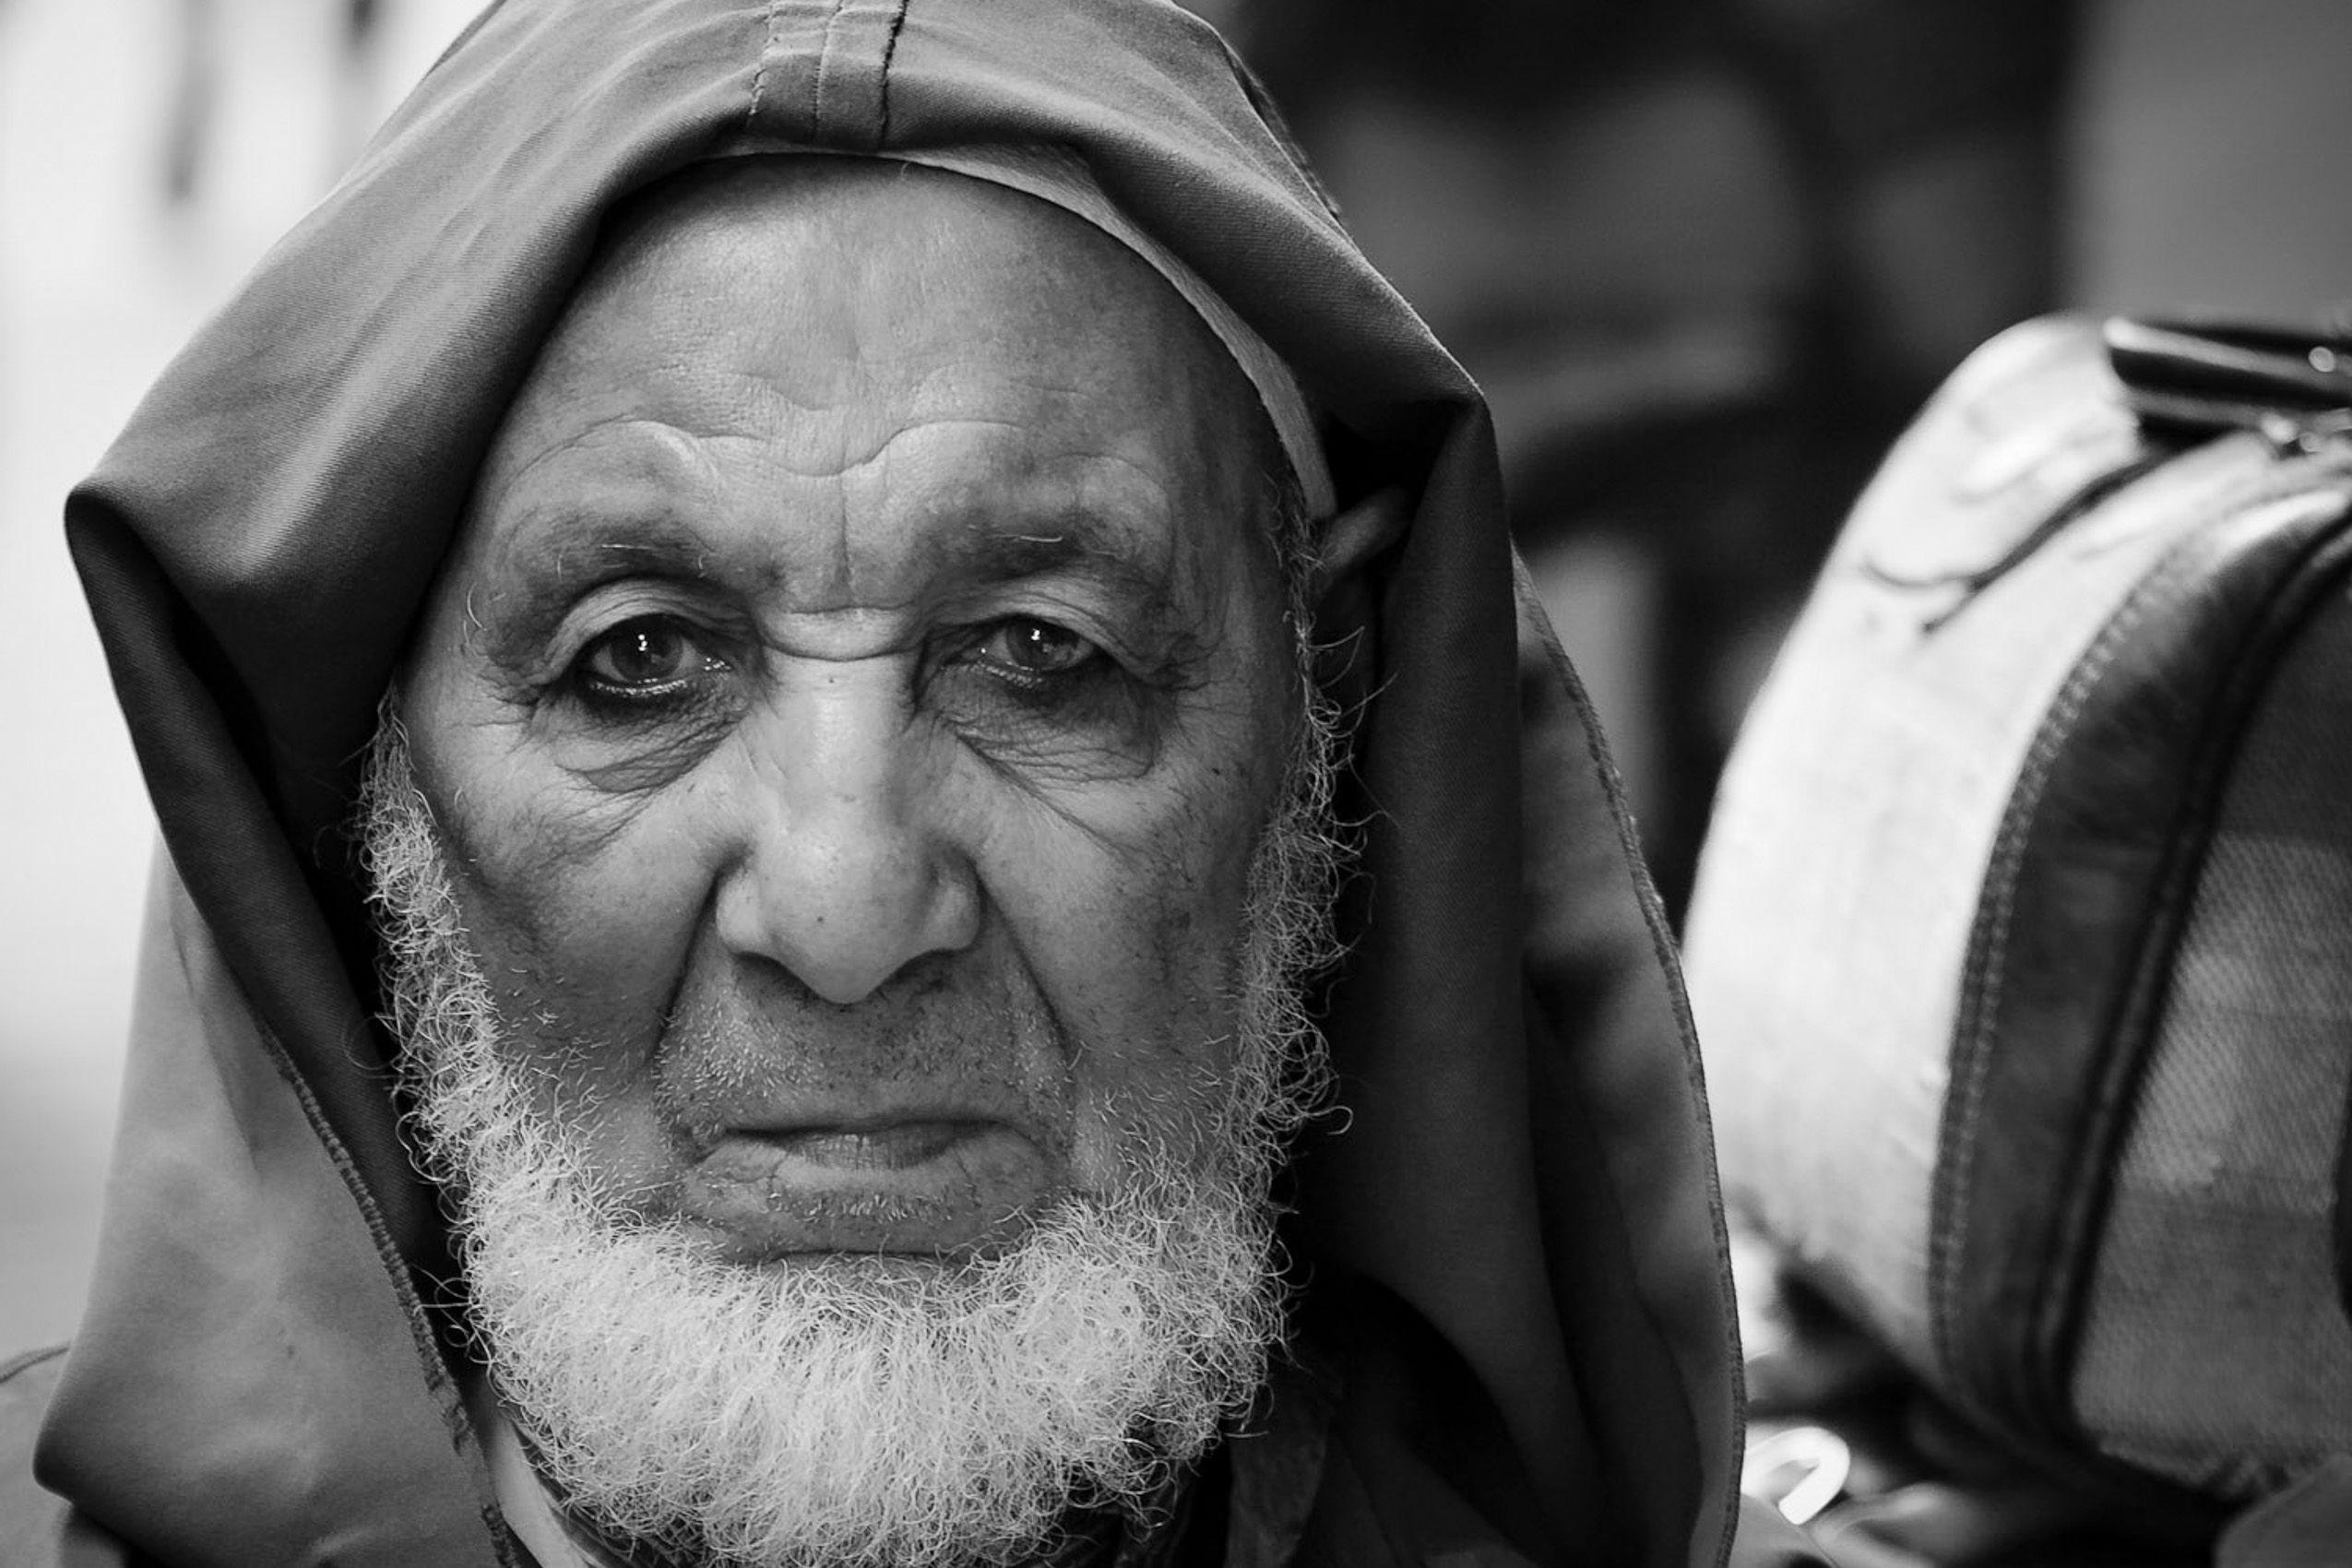 morocco_marrakech_man_portrait.jpg